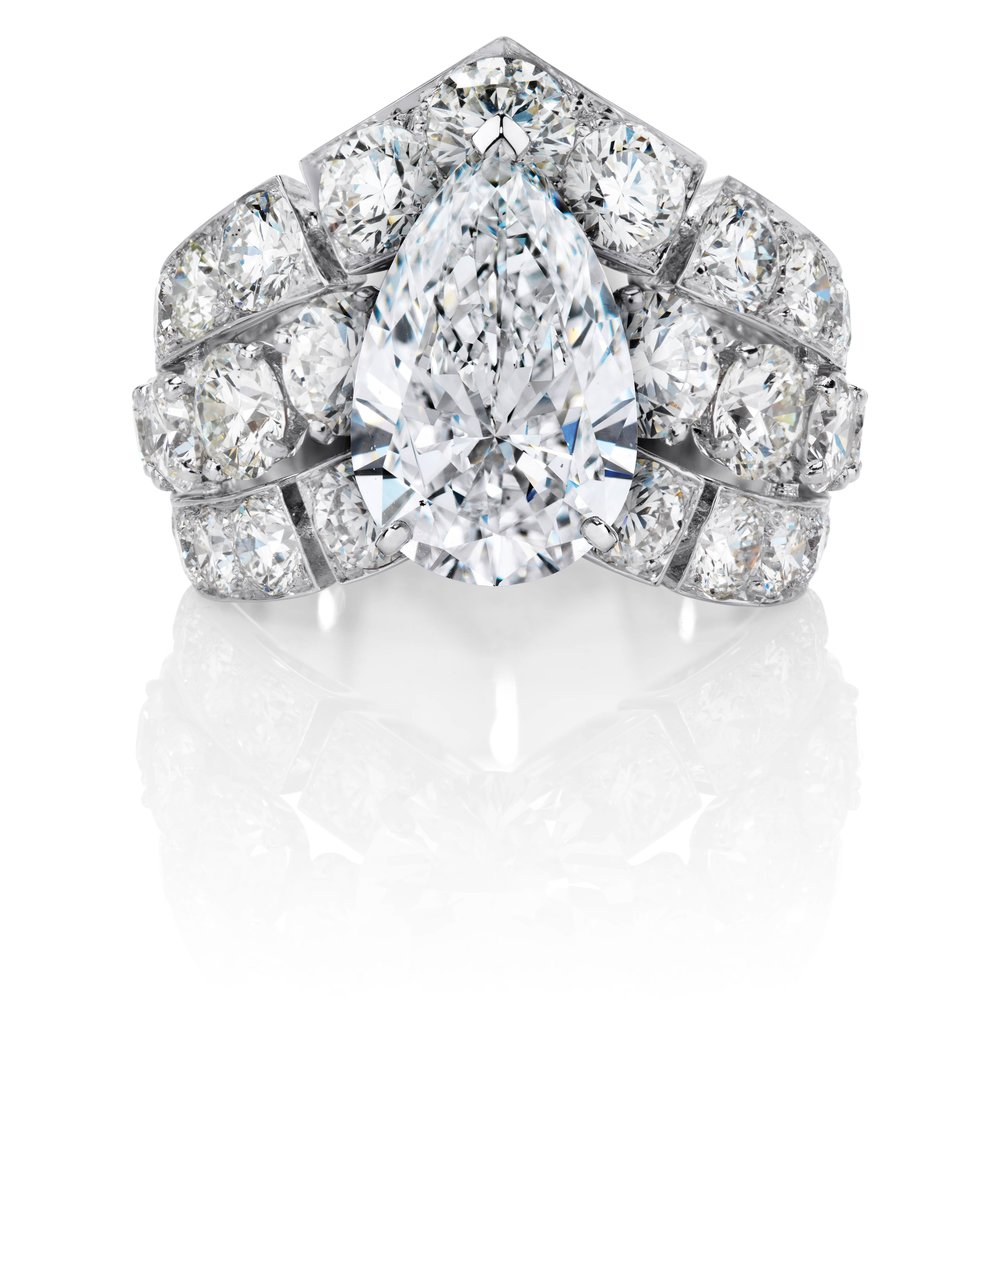 Phenomena Frost 8.01ct Including 3.0ct Centre Diamond Ring by De Beers